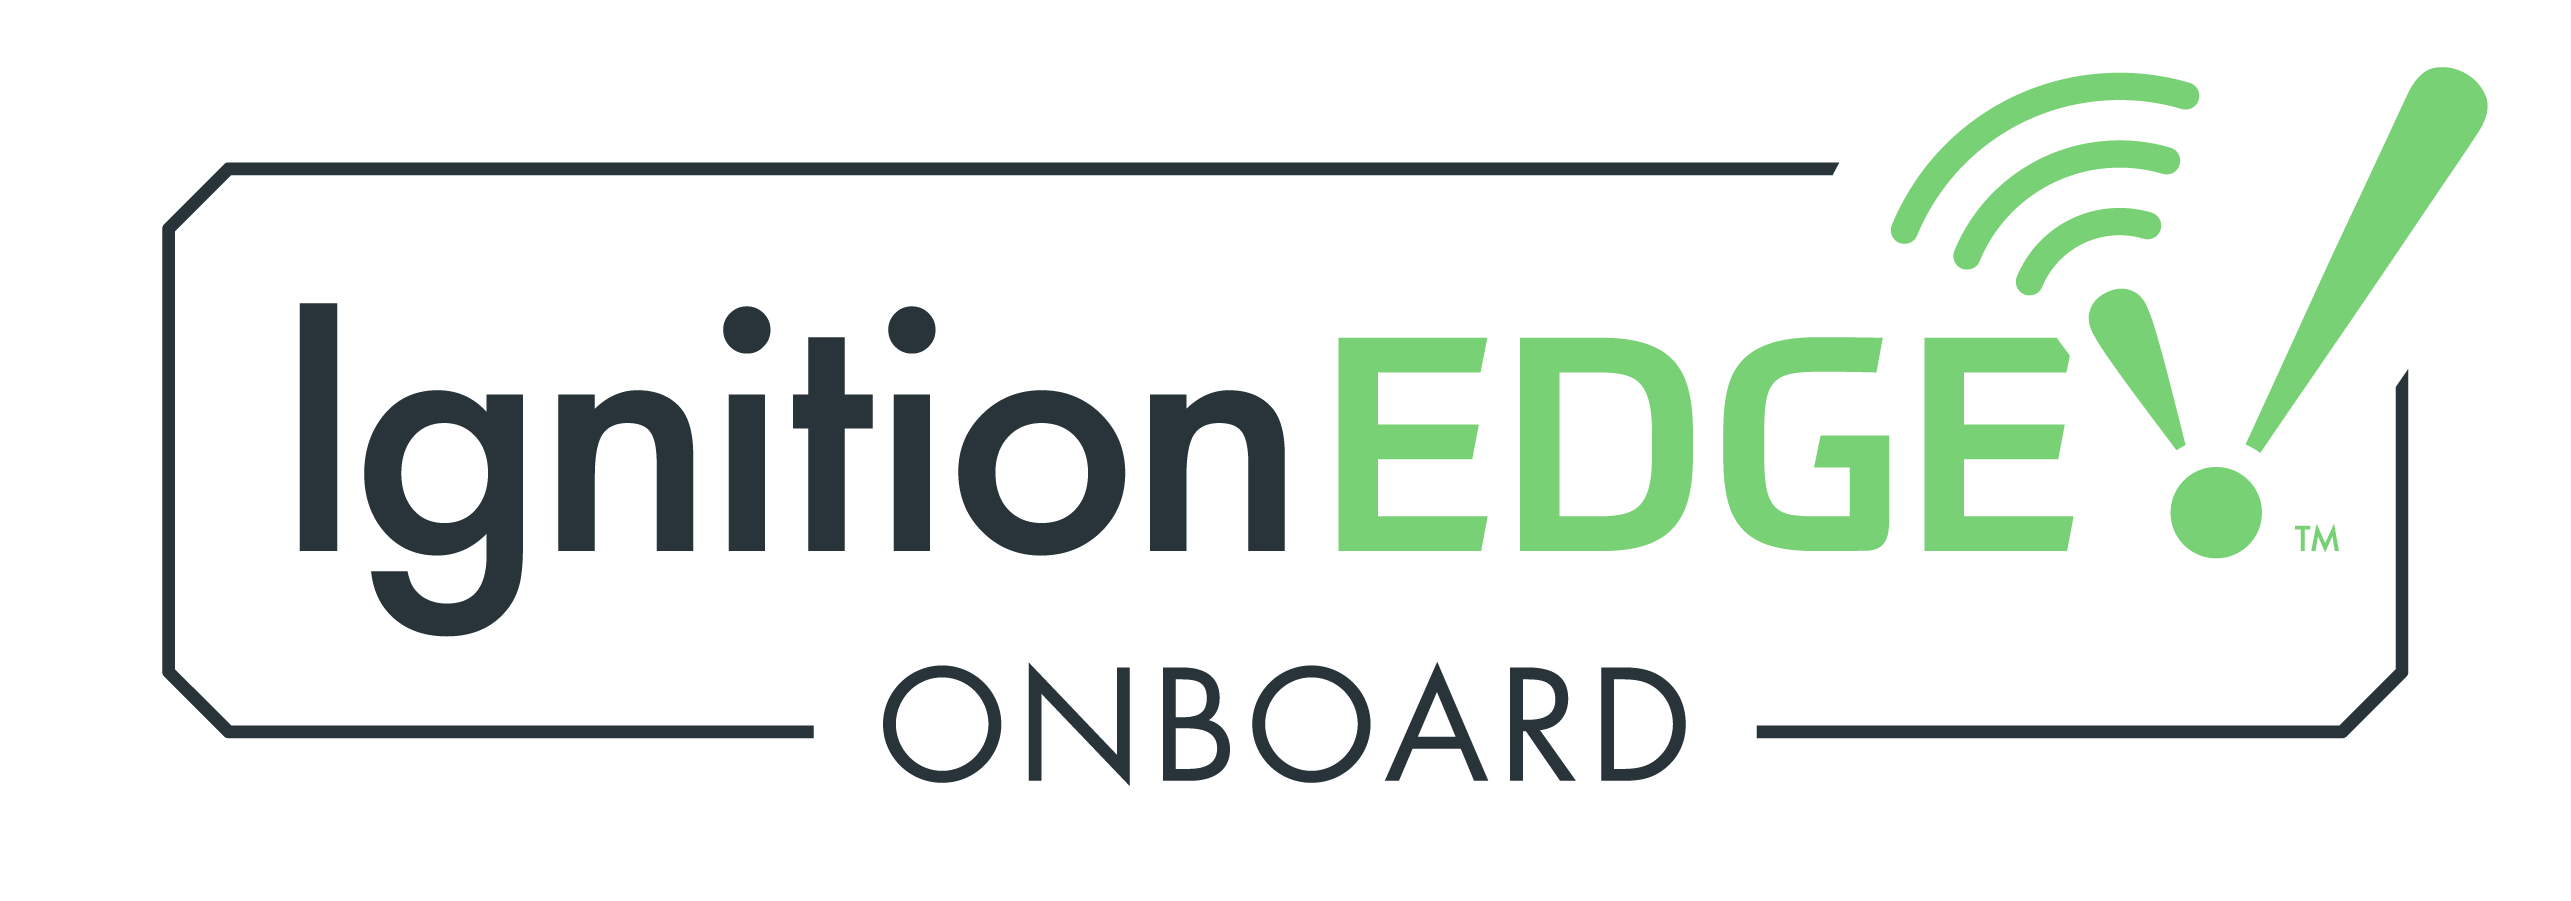 Ignition Edge Onboard logo